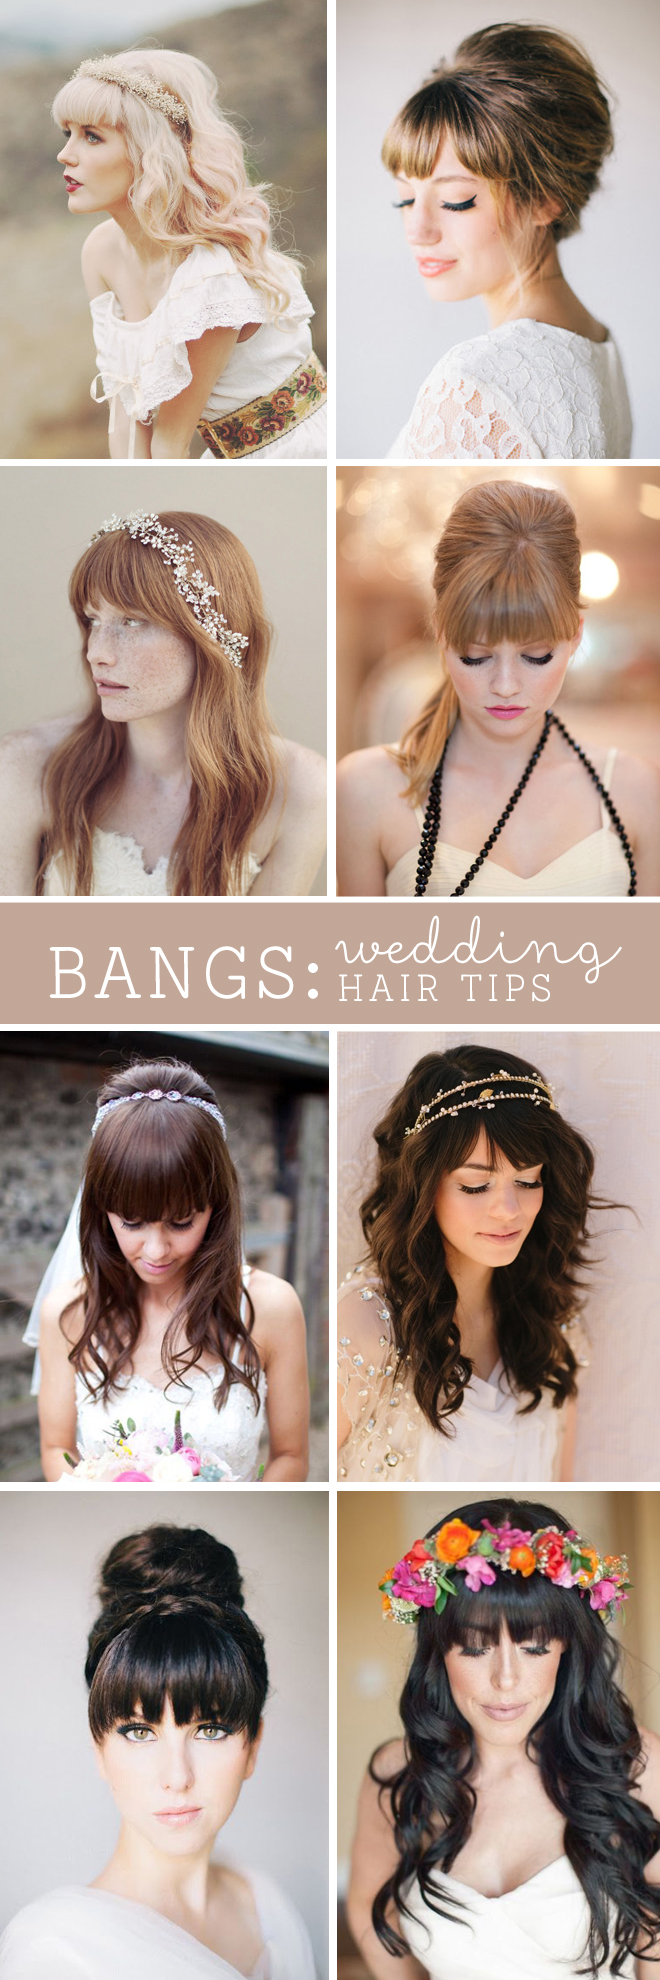 Strange Must Read Tips For Wedding Hairstyles With Full Fringe Bangs Short Hairstyles Gunalazisus